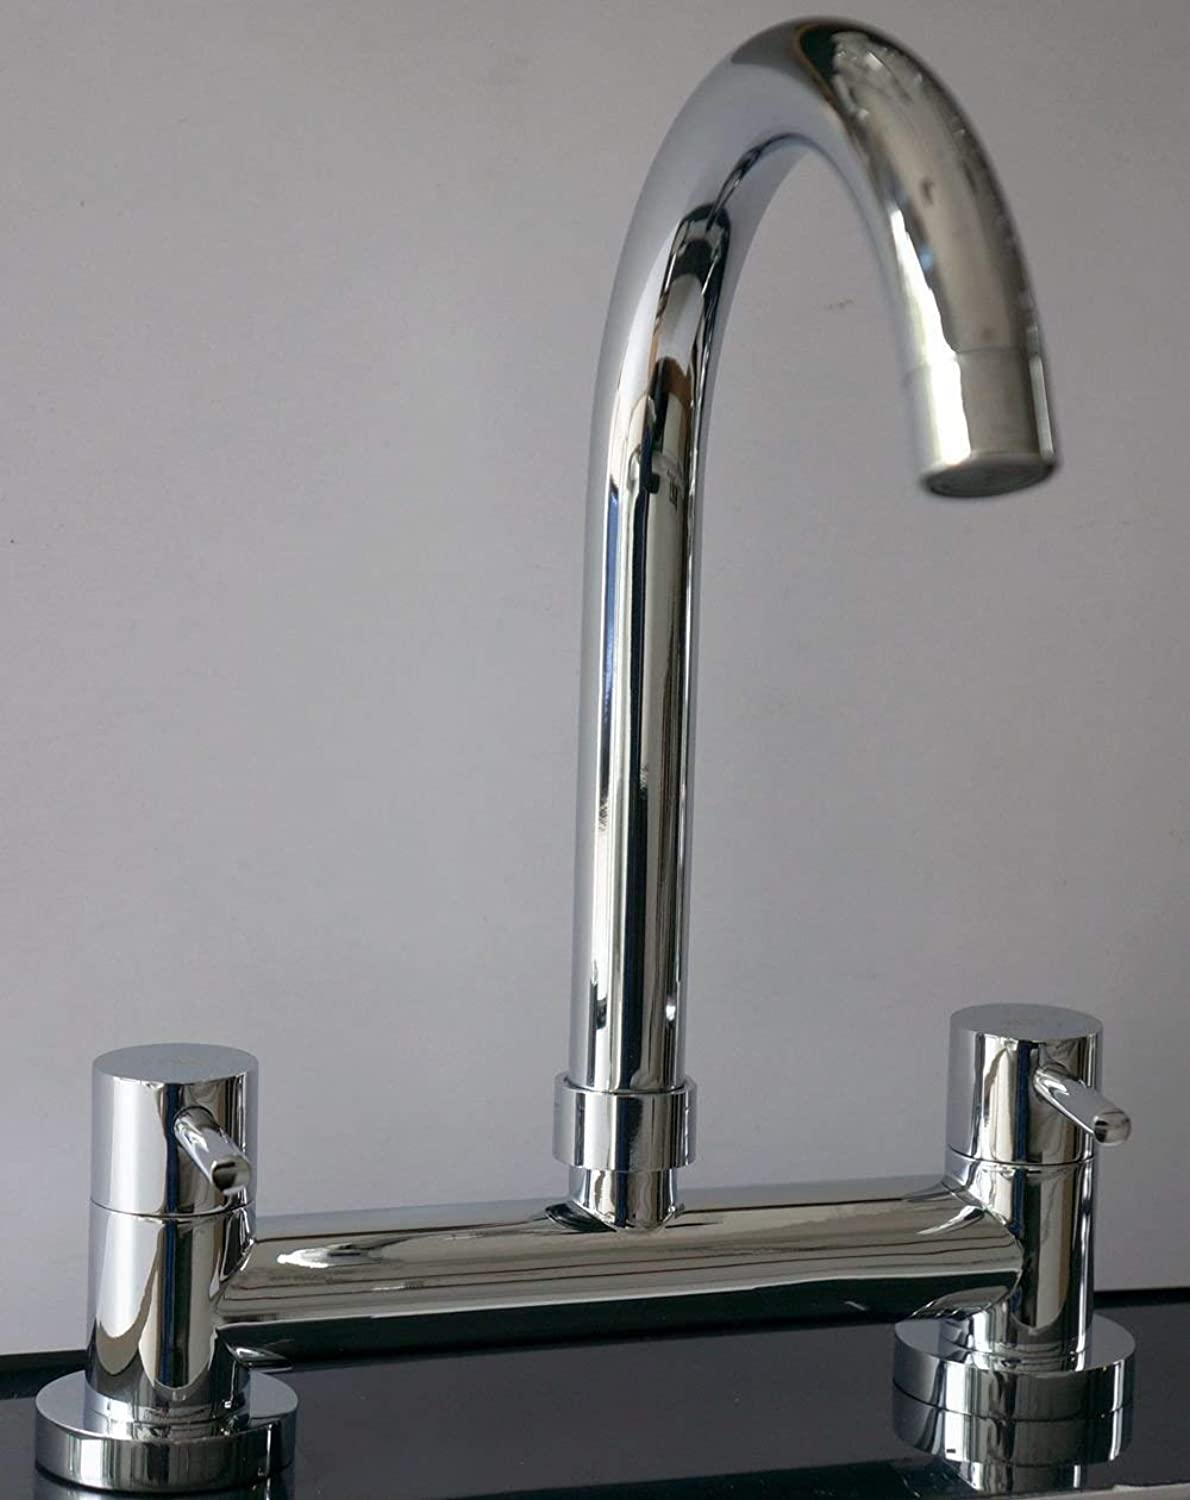 New Dual Lever Kitchen Sink Deck Mixer Chrome TAP 1 4 Turn 2 Hole 180MM Centre TM